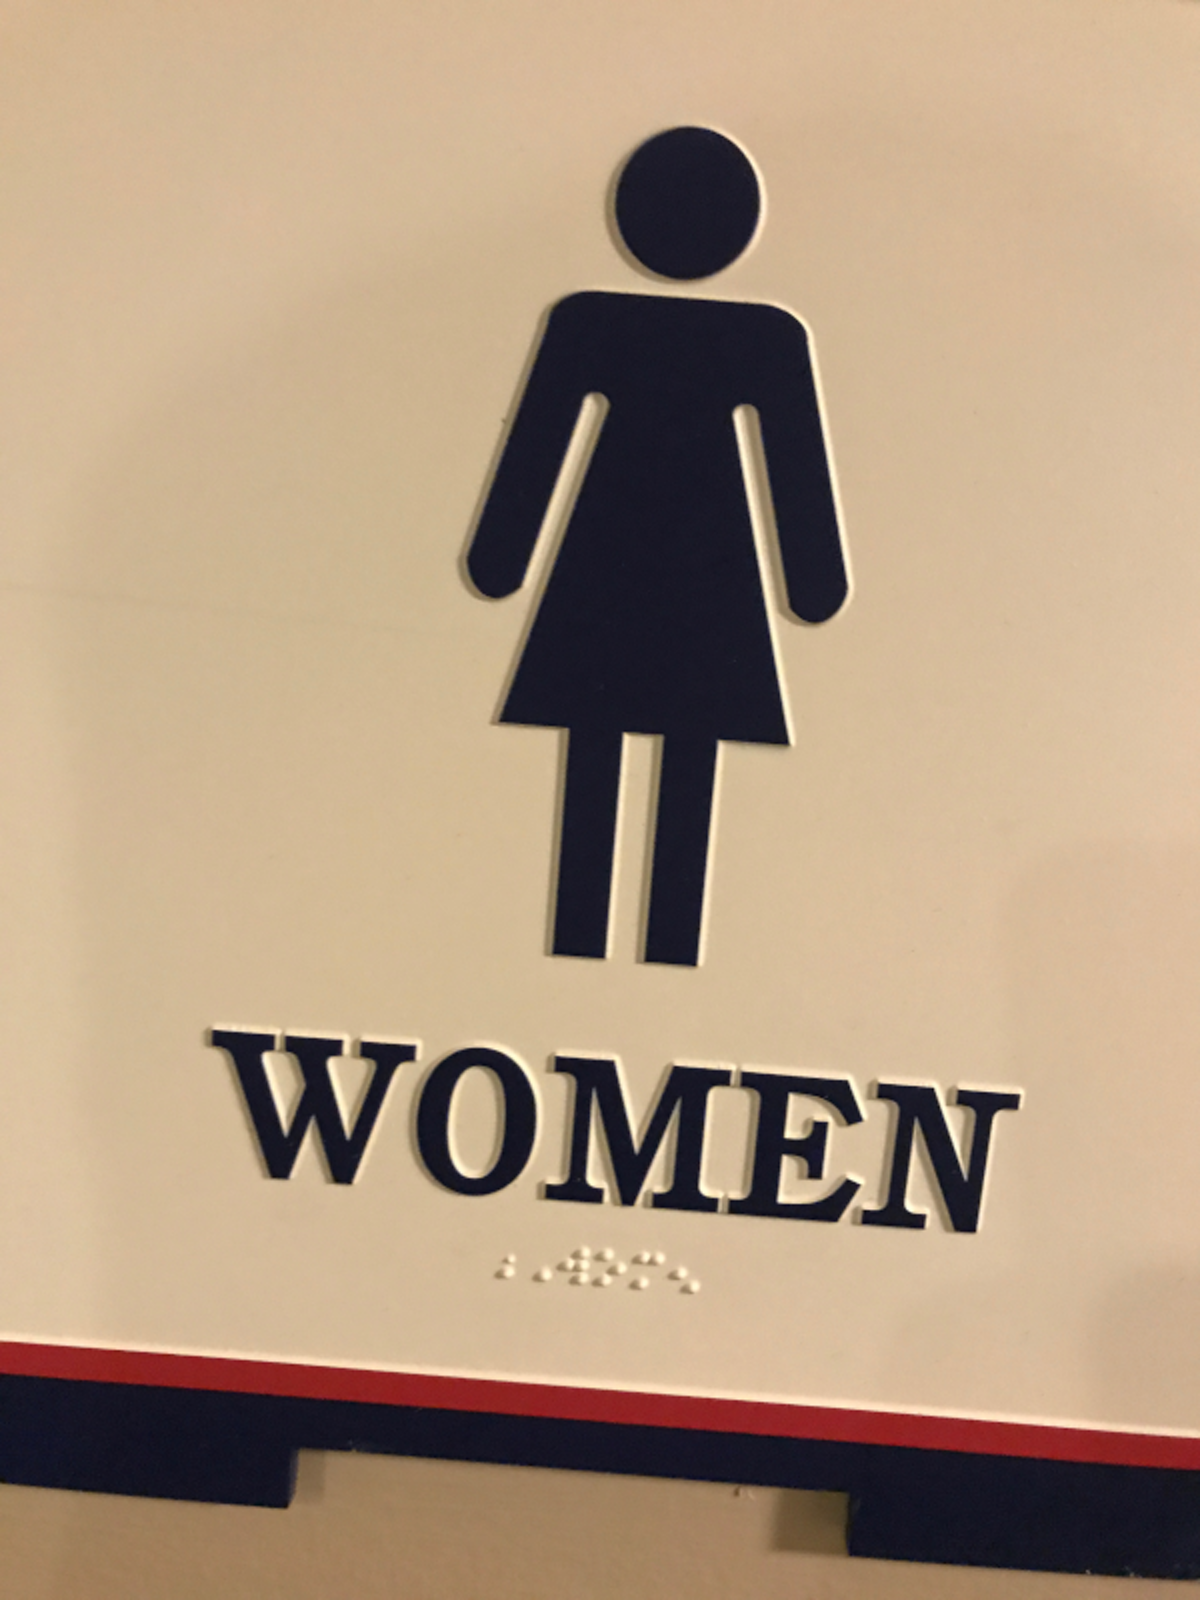 Women's restroom sign with Women in braille